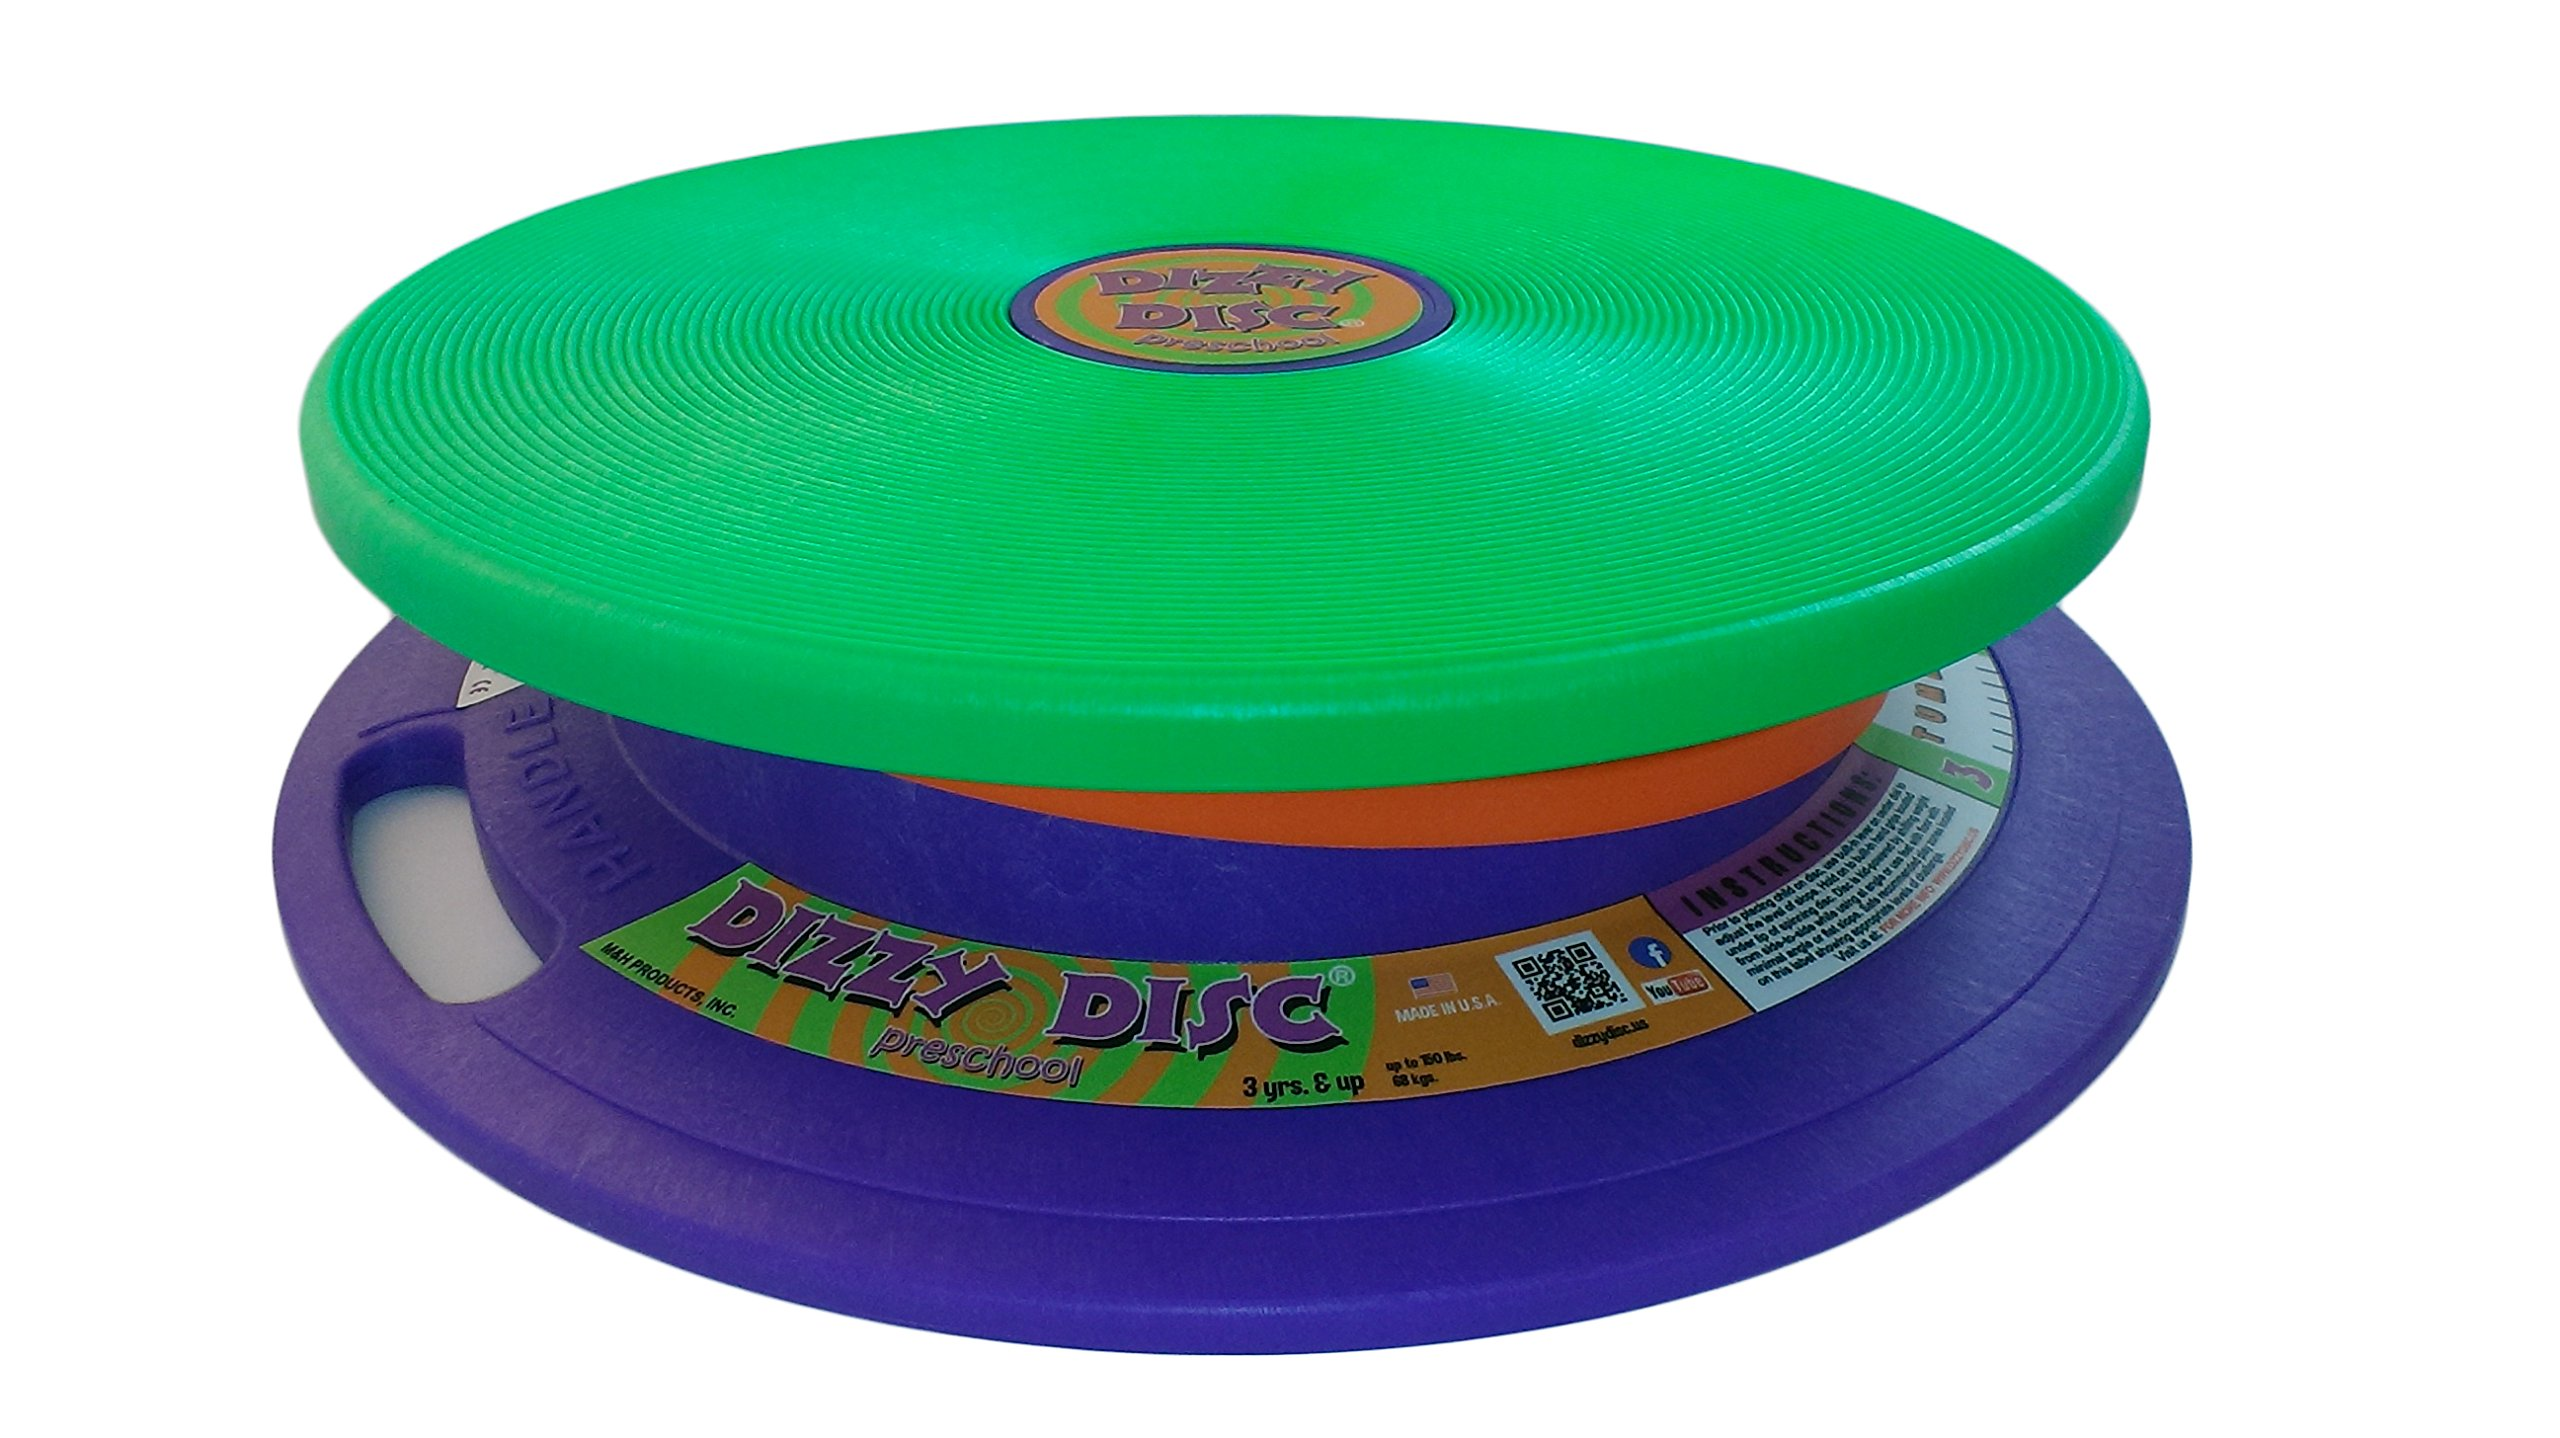 Dizzy Disc Preschool